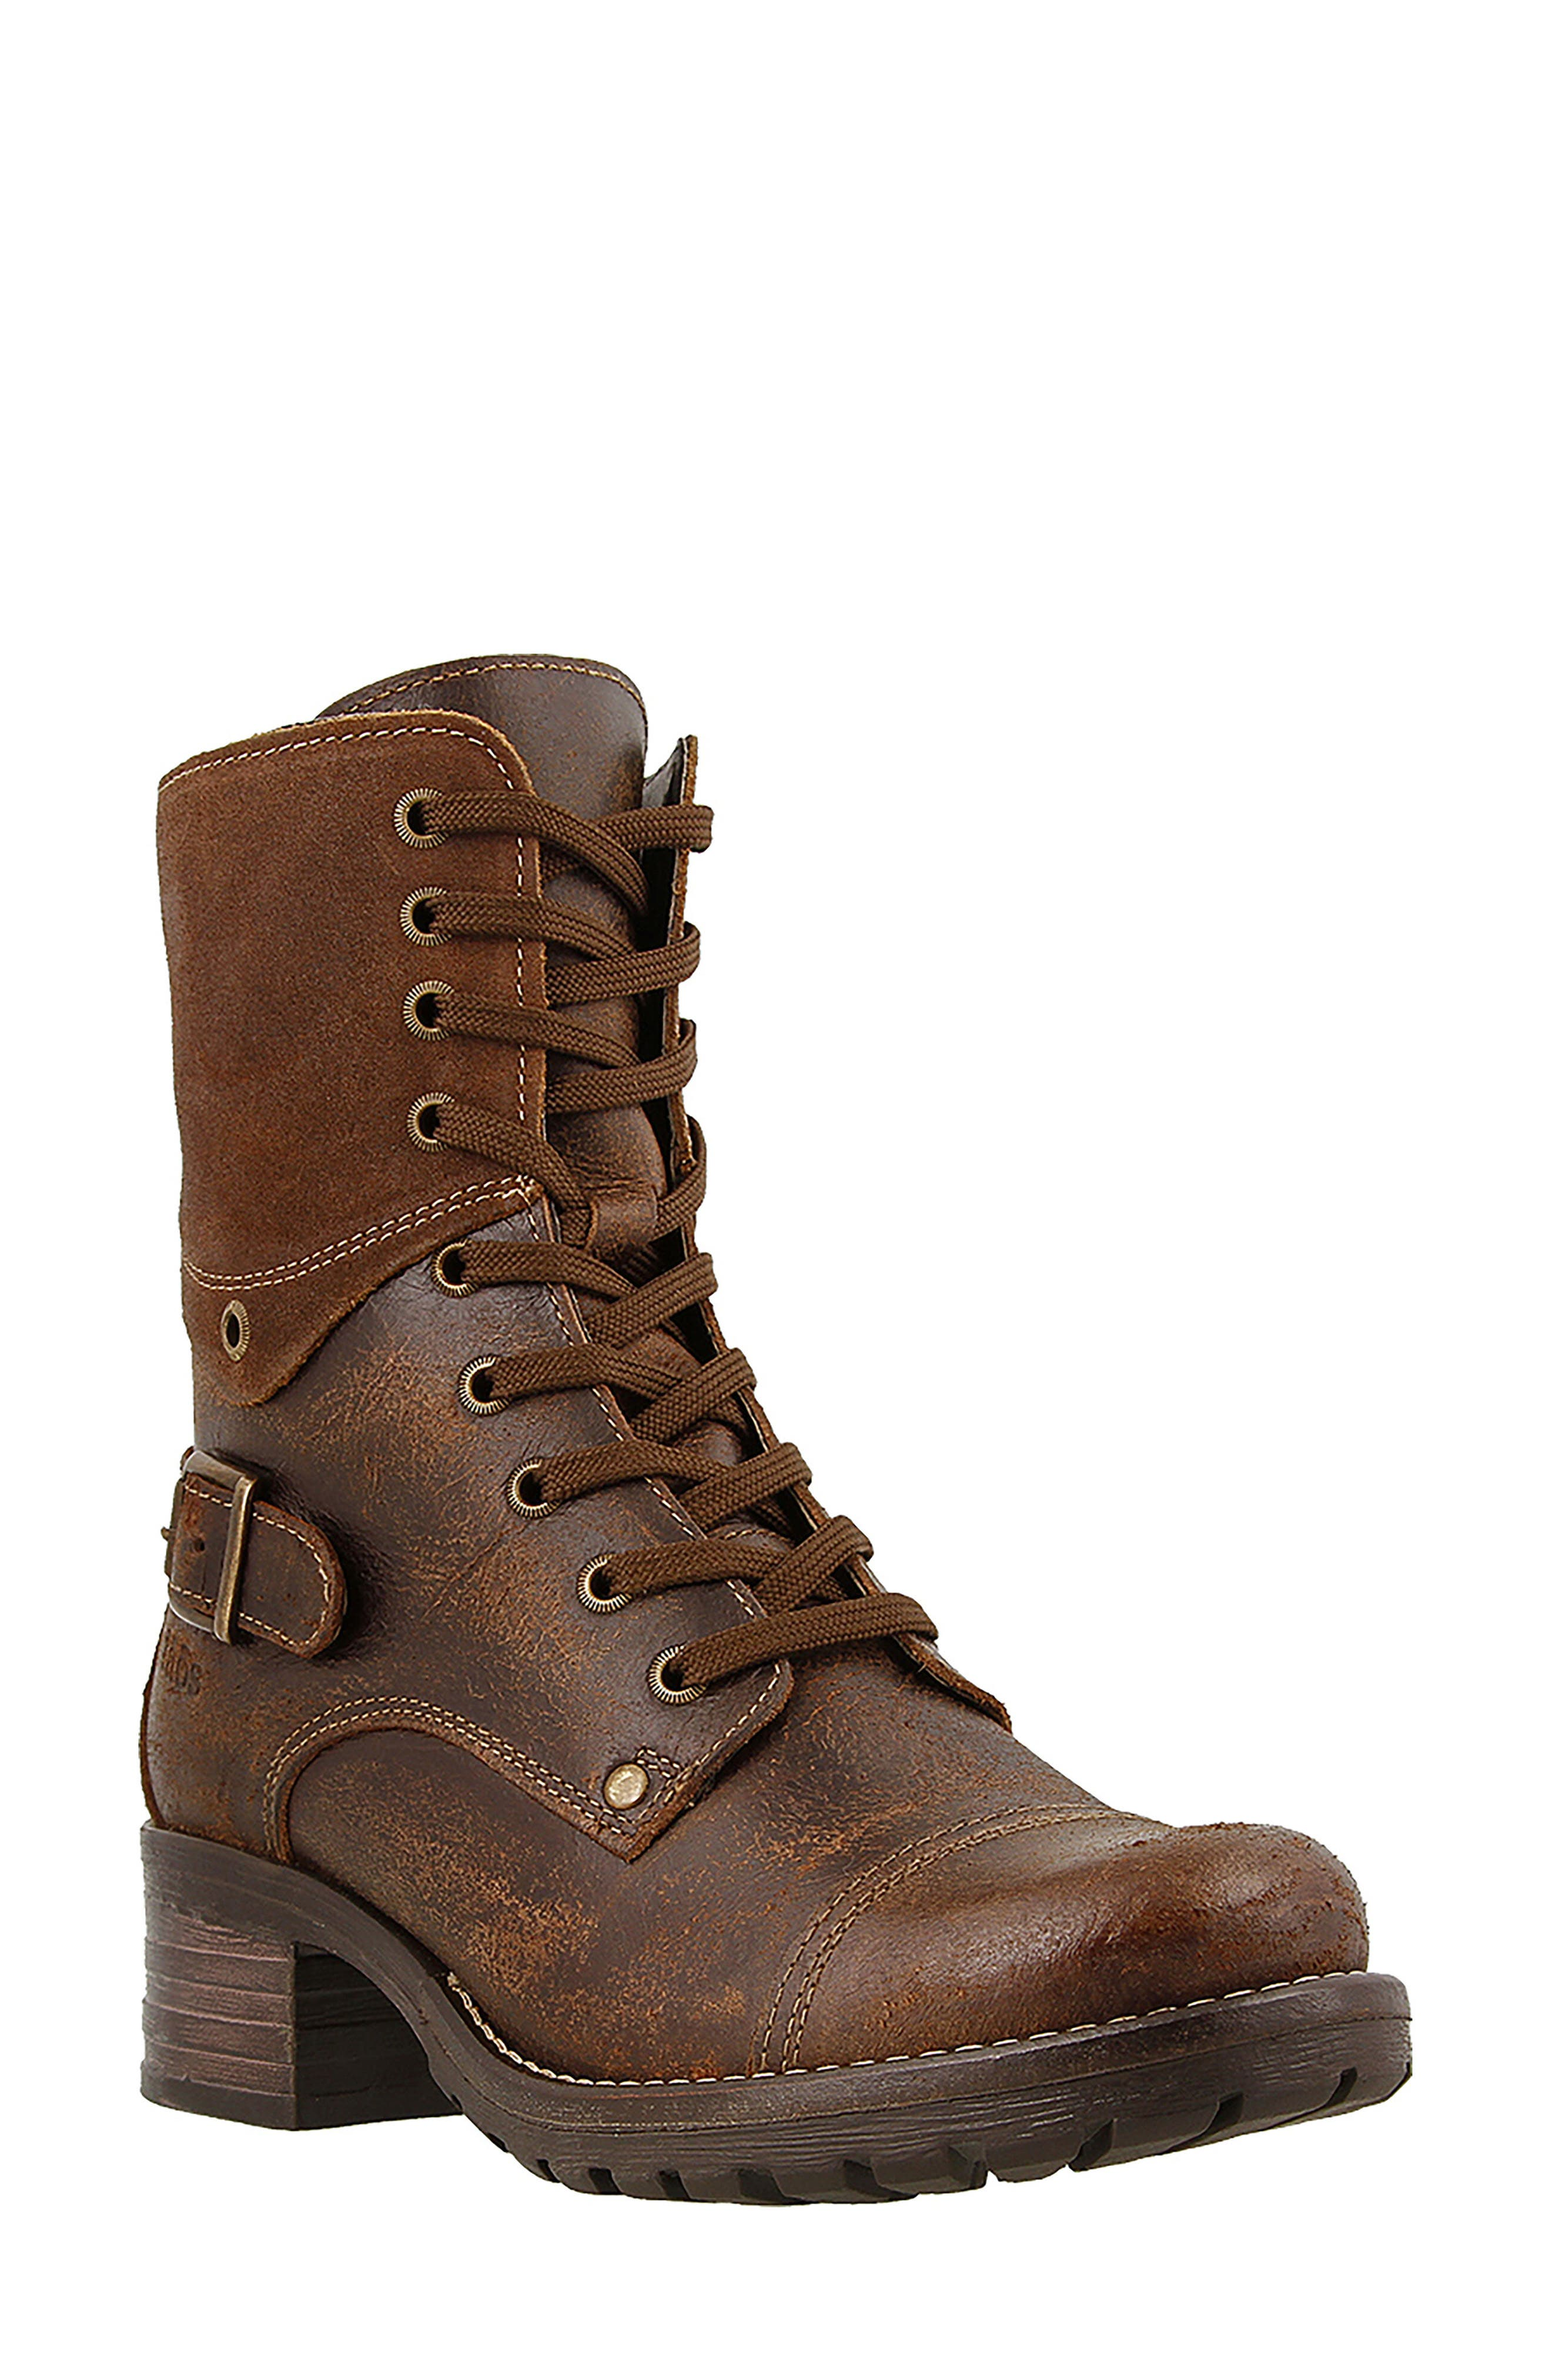 Crave Boot,                             Main thumbnail 1, color,                             Brown Leather